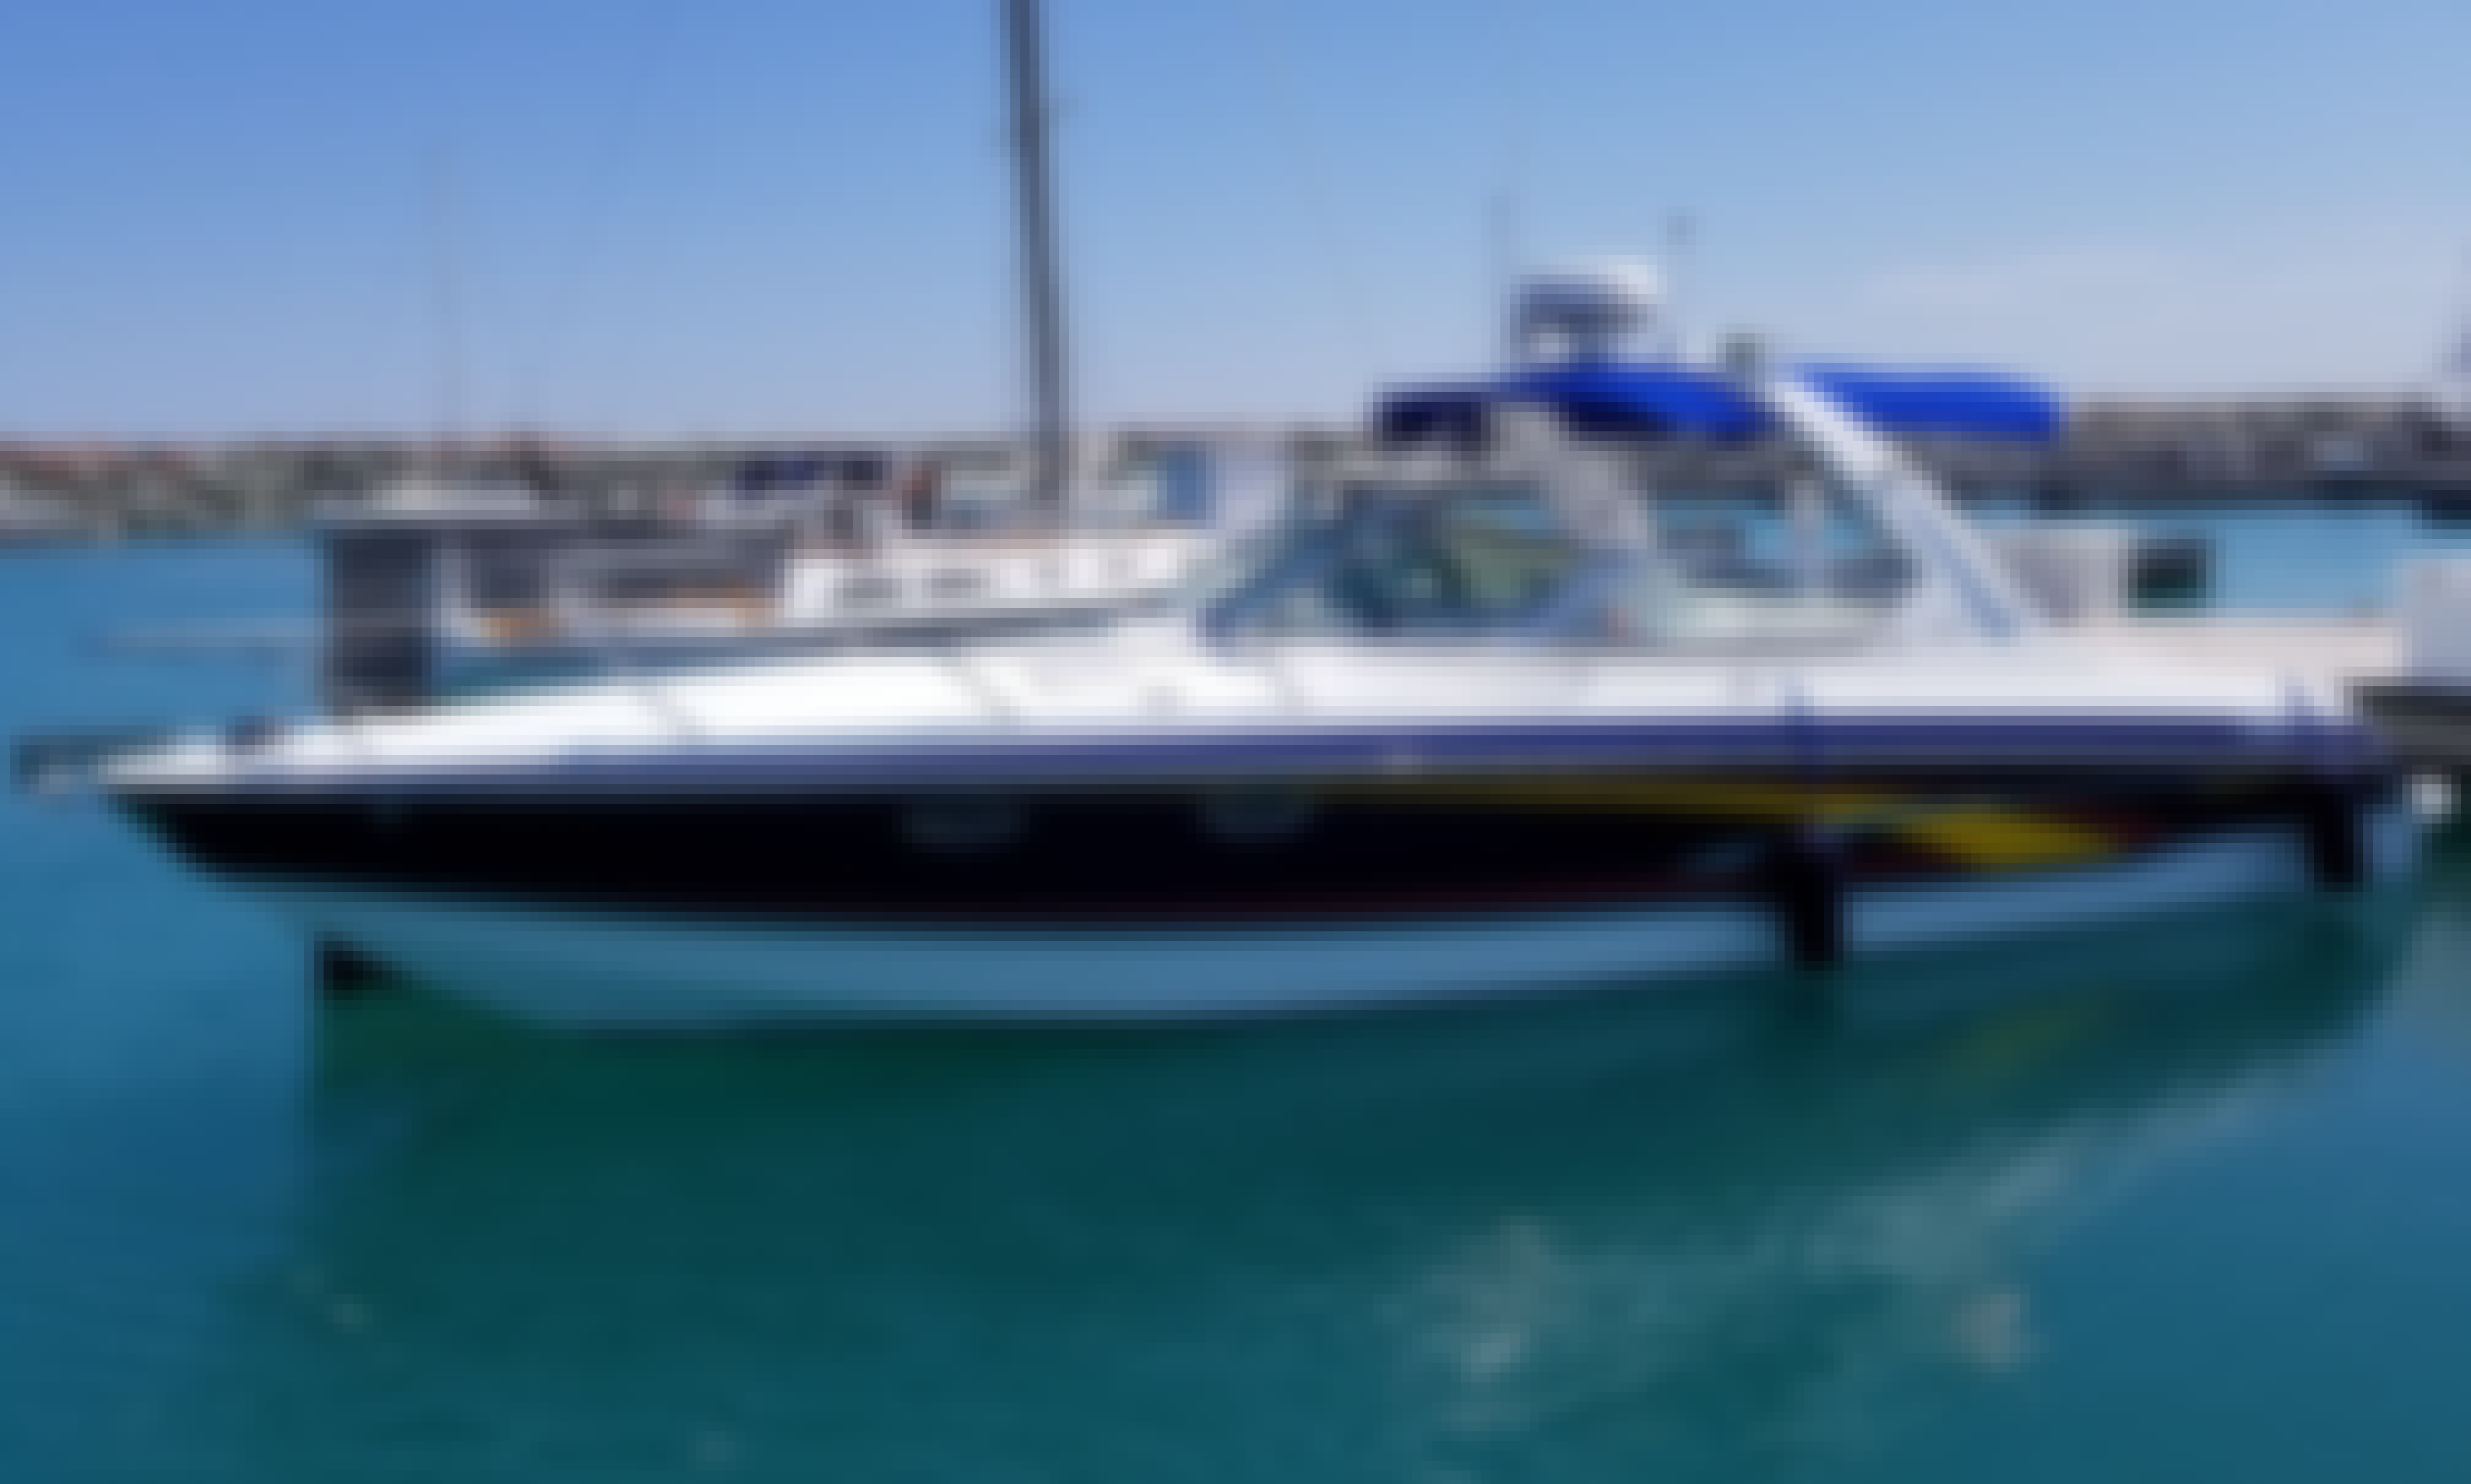 Hail Yeah Charters - Premier Powerboat Charter in Chicago!